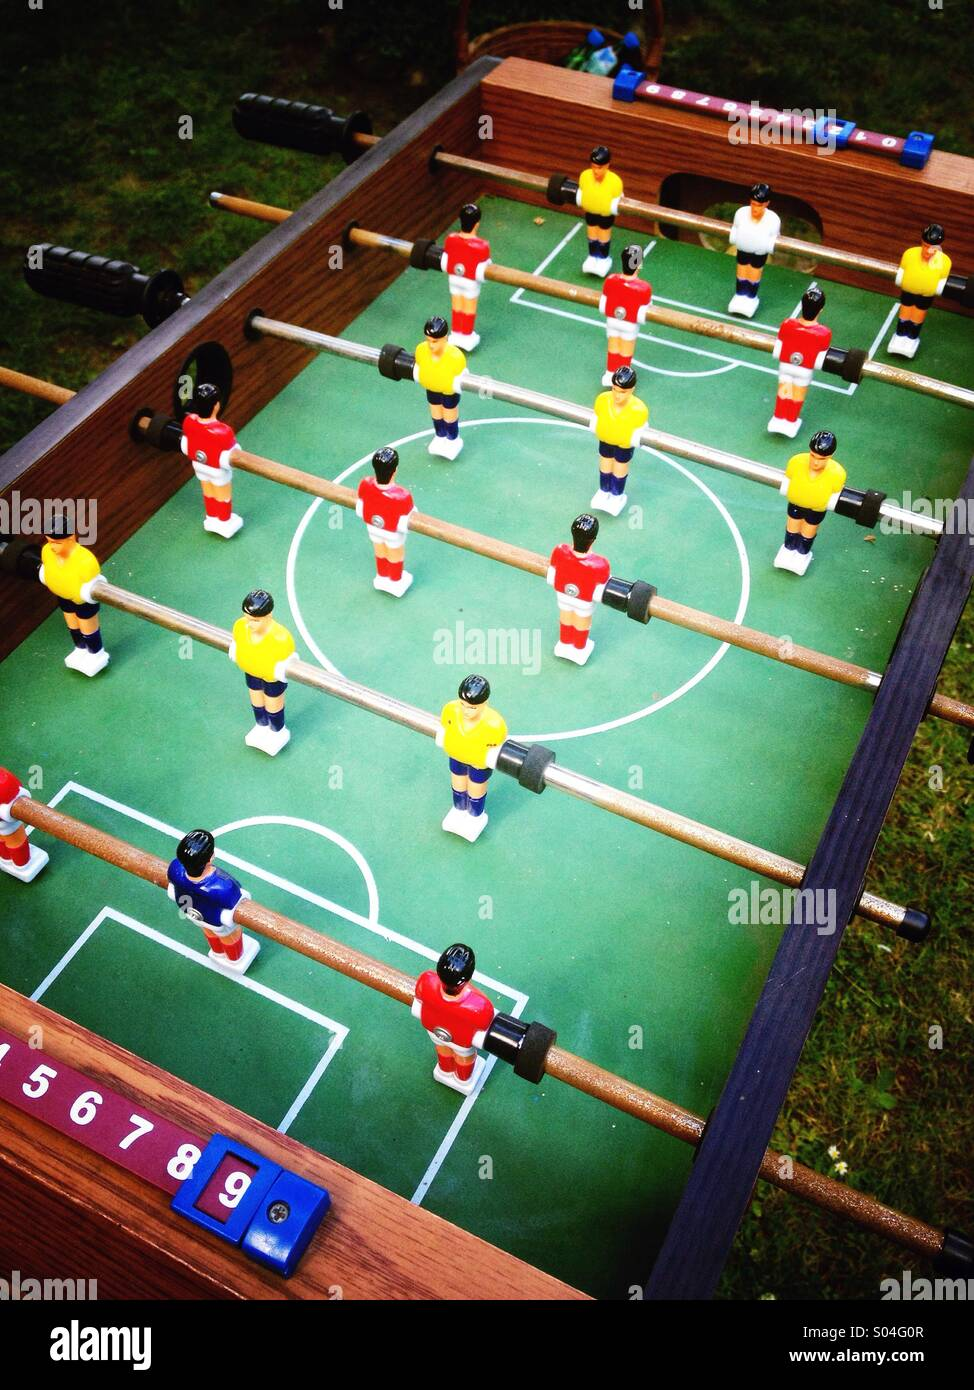 Football, vintage Tisch Fussball game - Stock Image